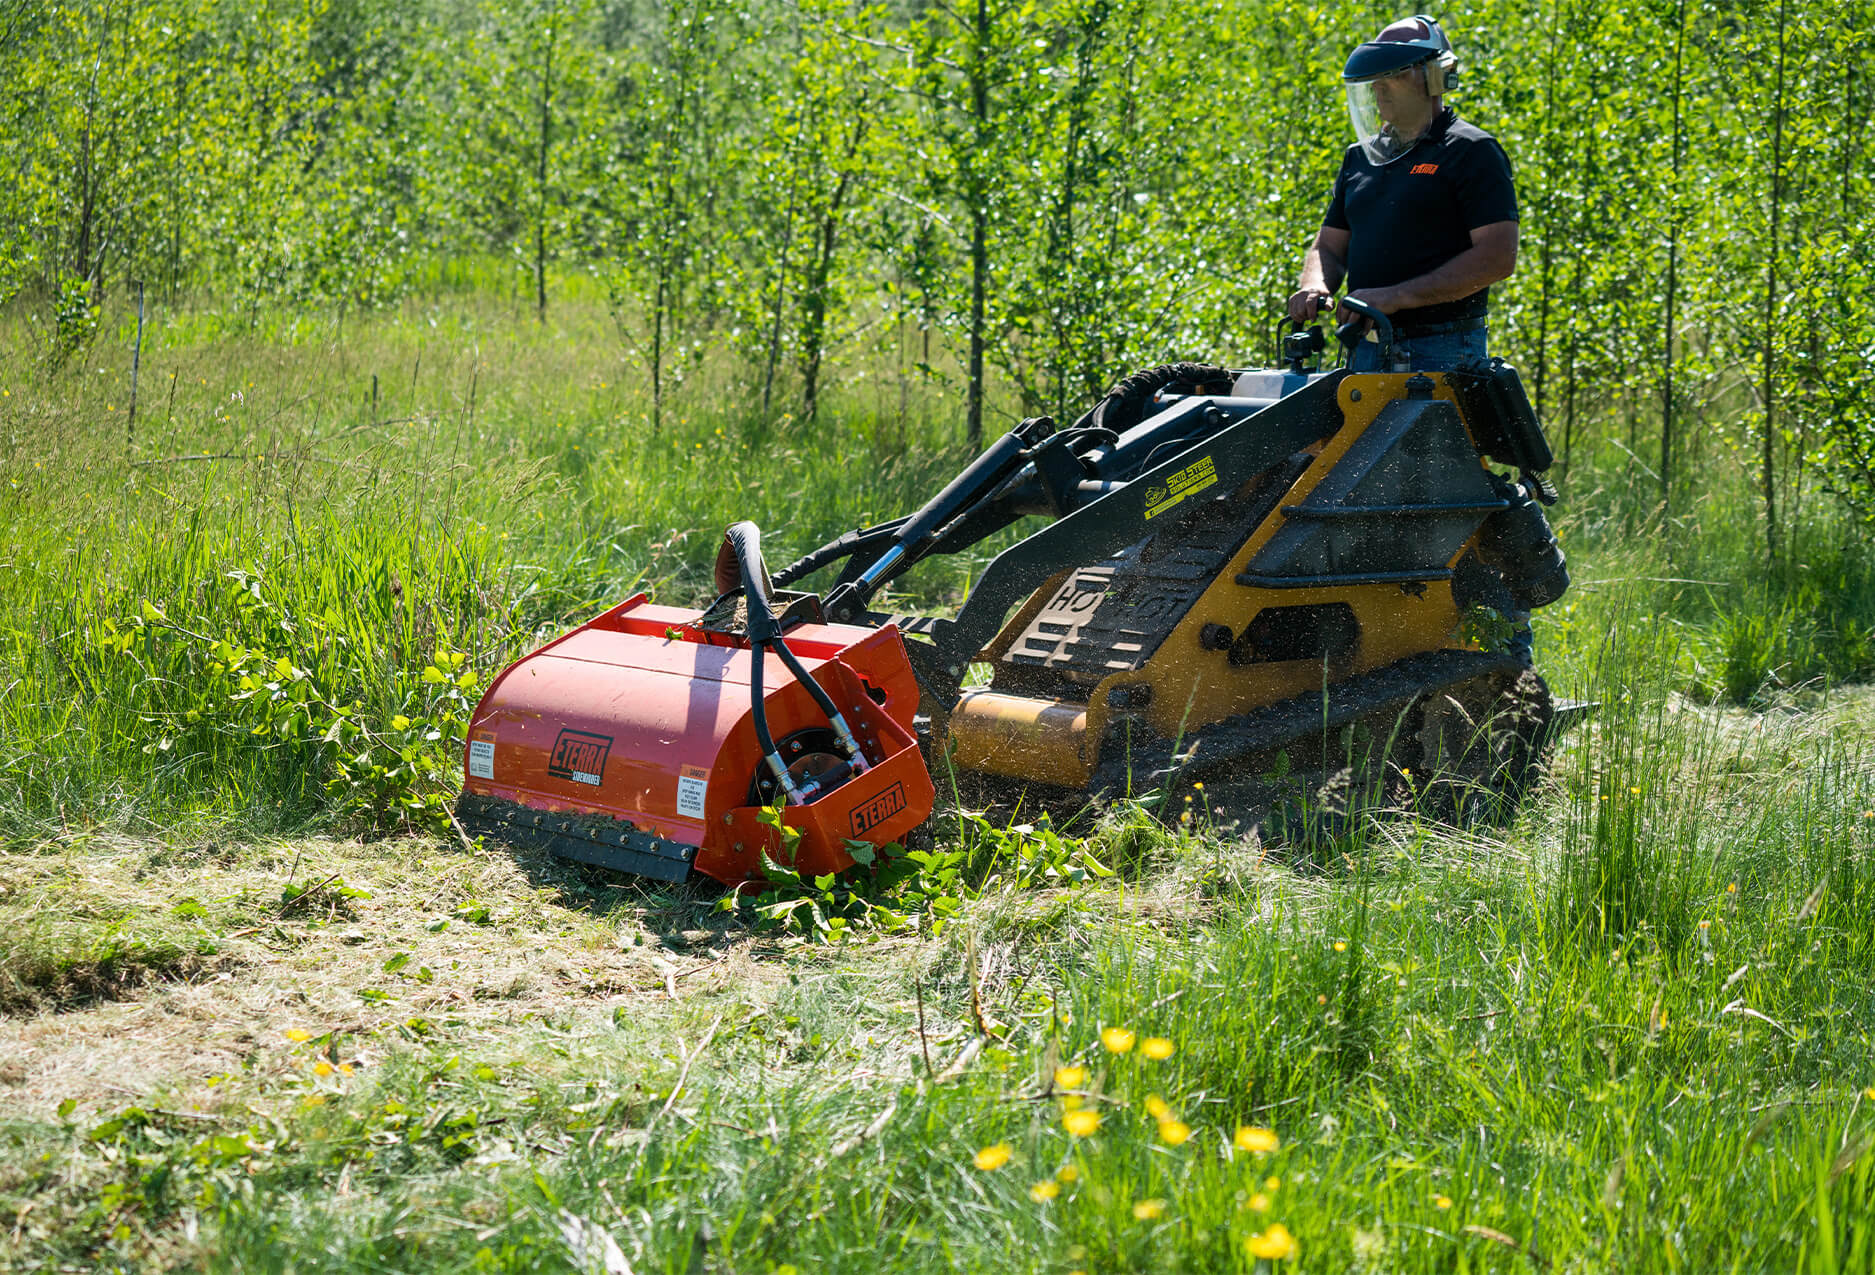 Eterra Sidewinder mini Skid Steer flail mower side angle on vermeer